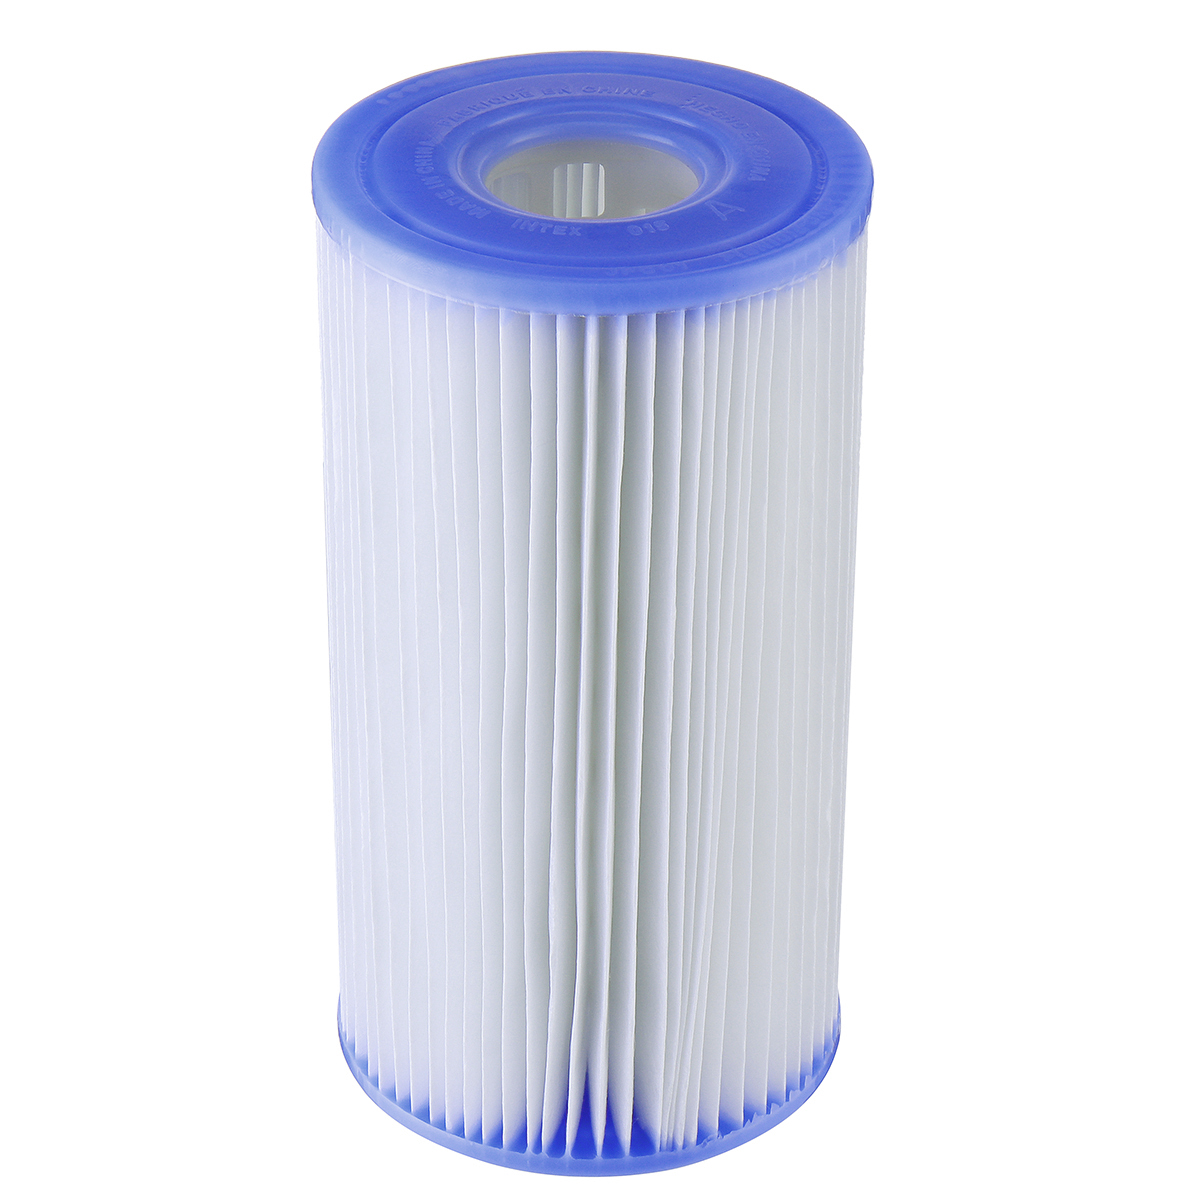 Other gadgets pump filter cartridge swimming pool pump - Intex swimming pool pumps south africa ...